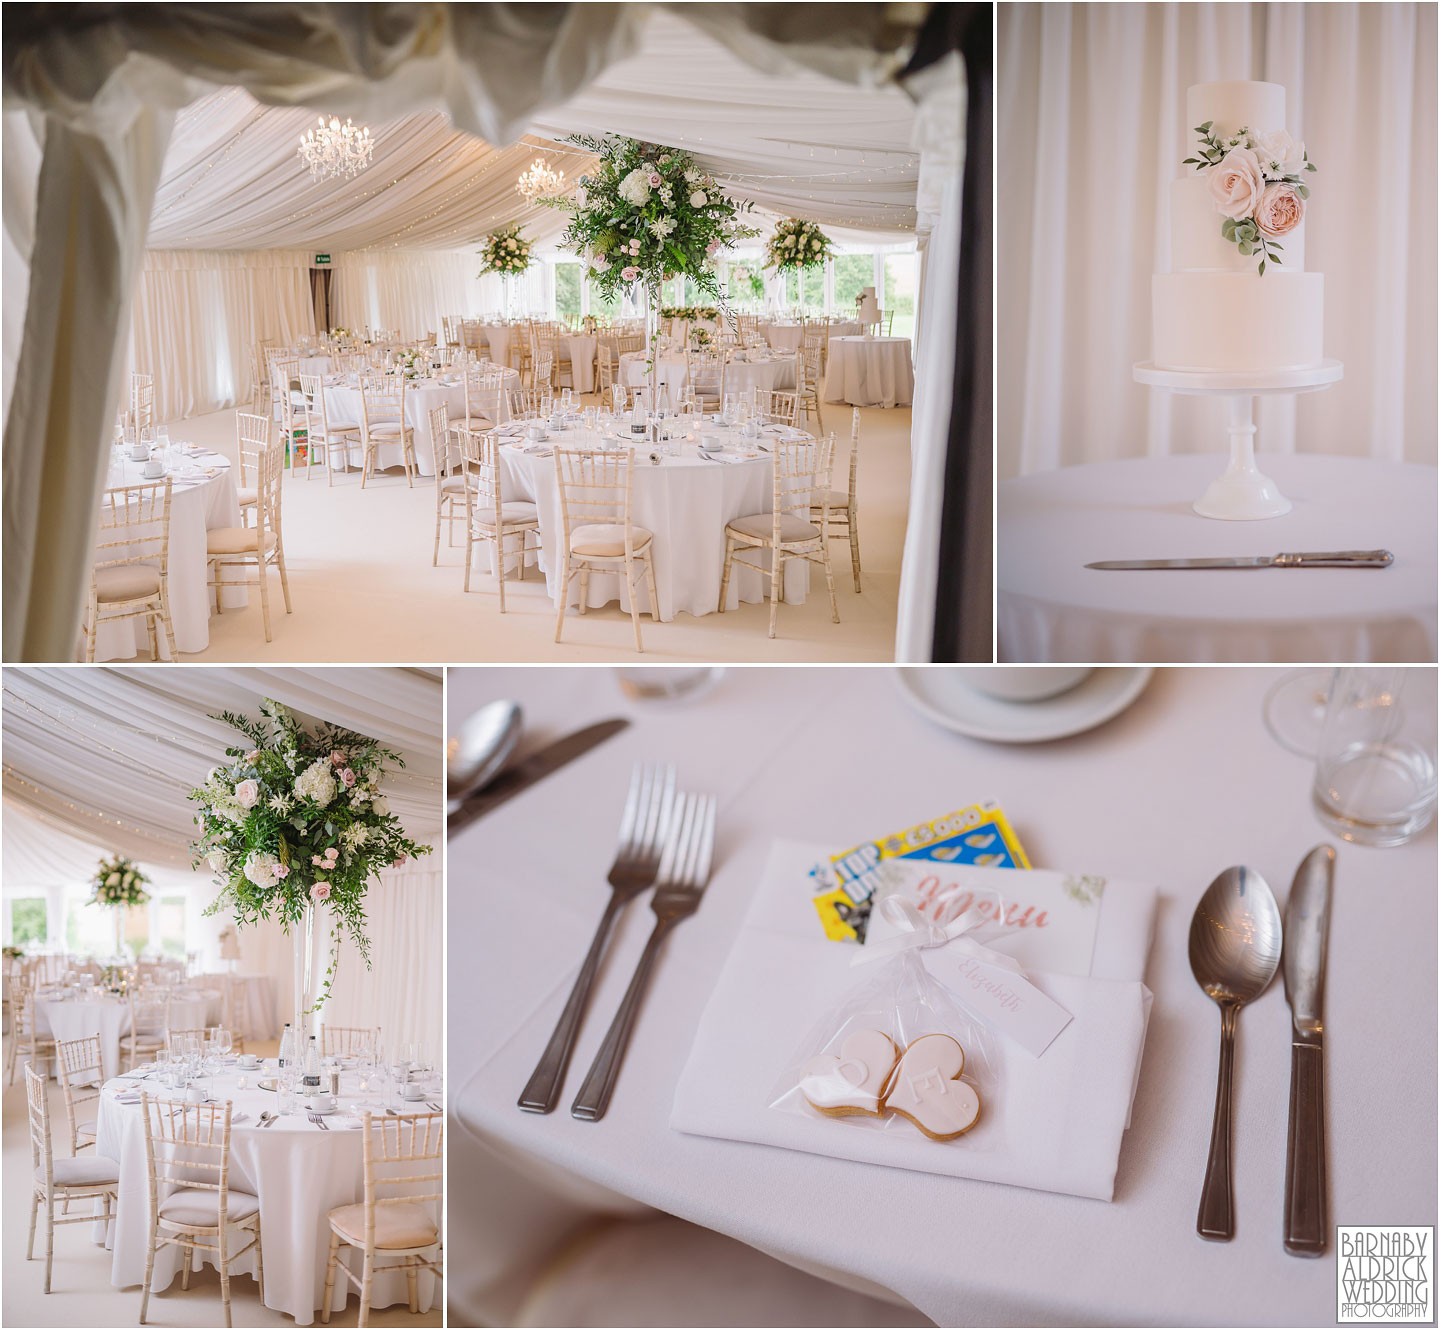 Priory Cottages Wedding Marquee, Meal space at Priory Cottages Yorkshire, Bright white wedding marquee, Wedding breakfast ideas